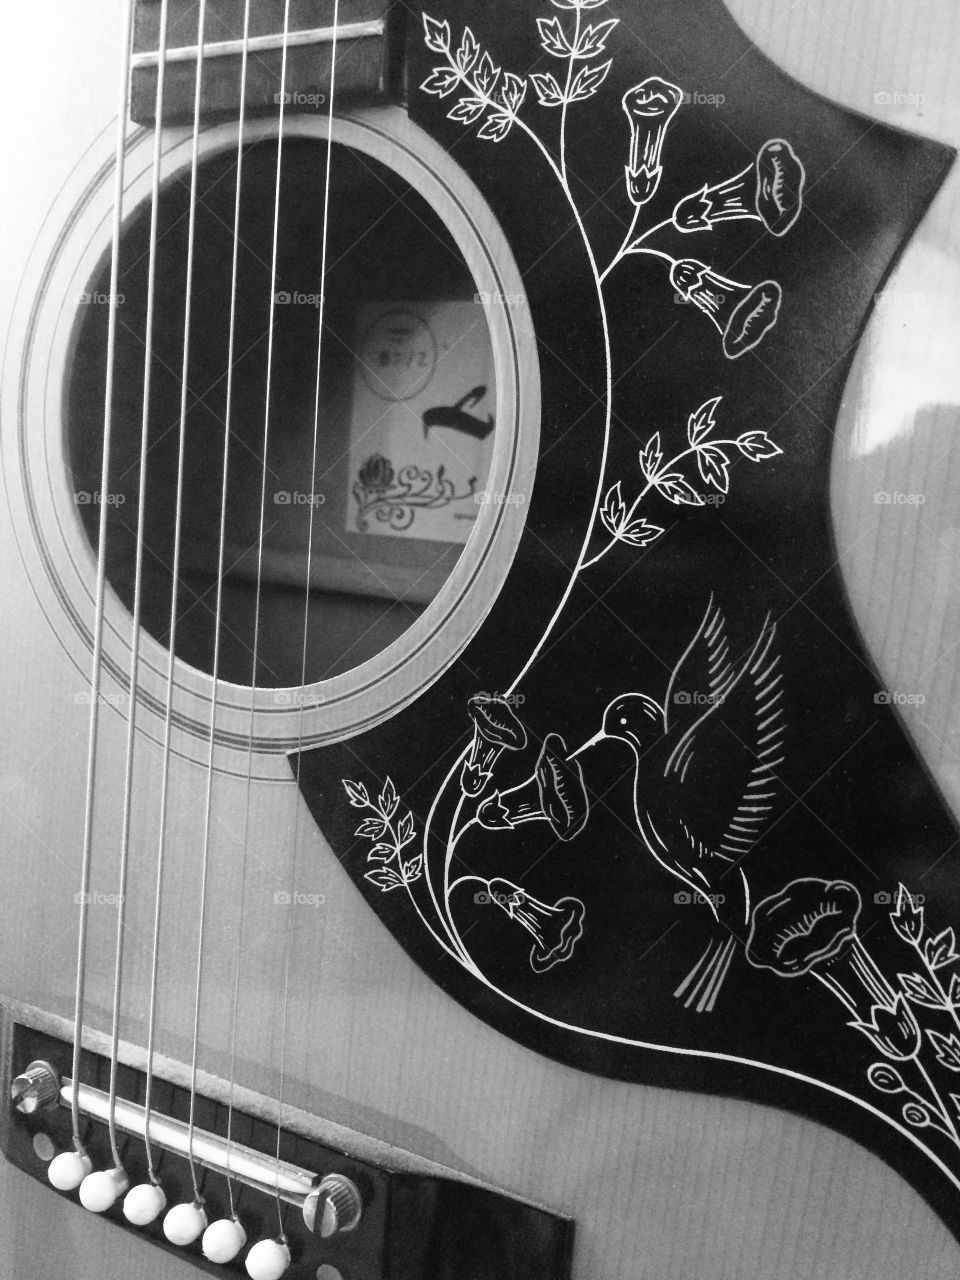 Guitar close up in black and white